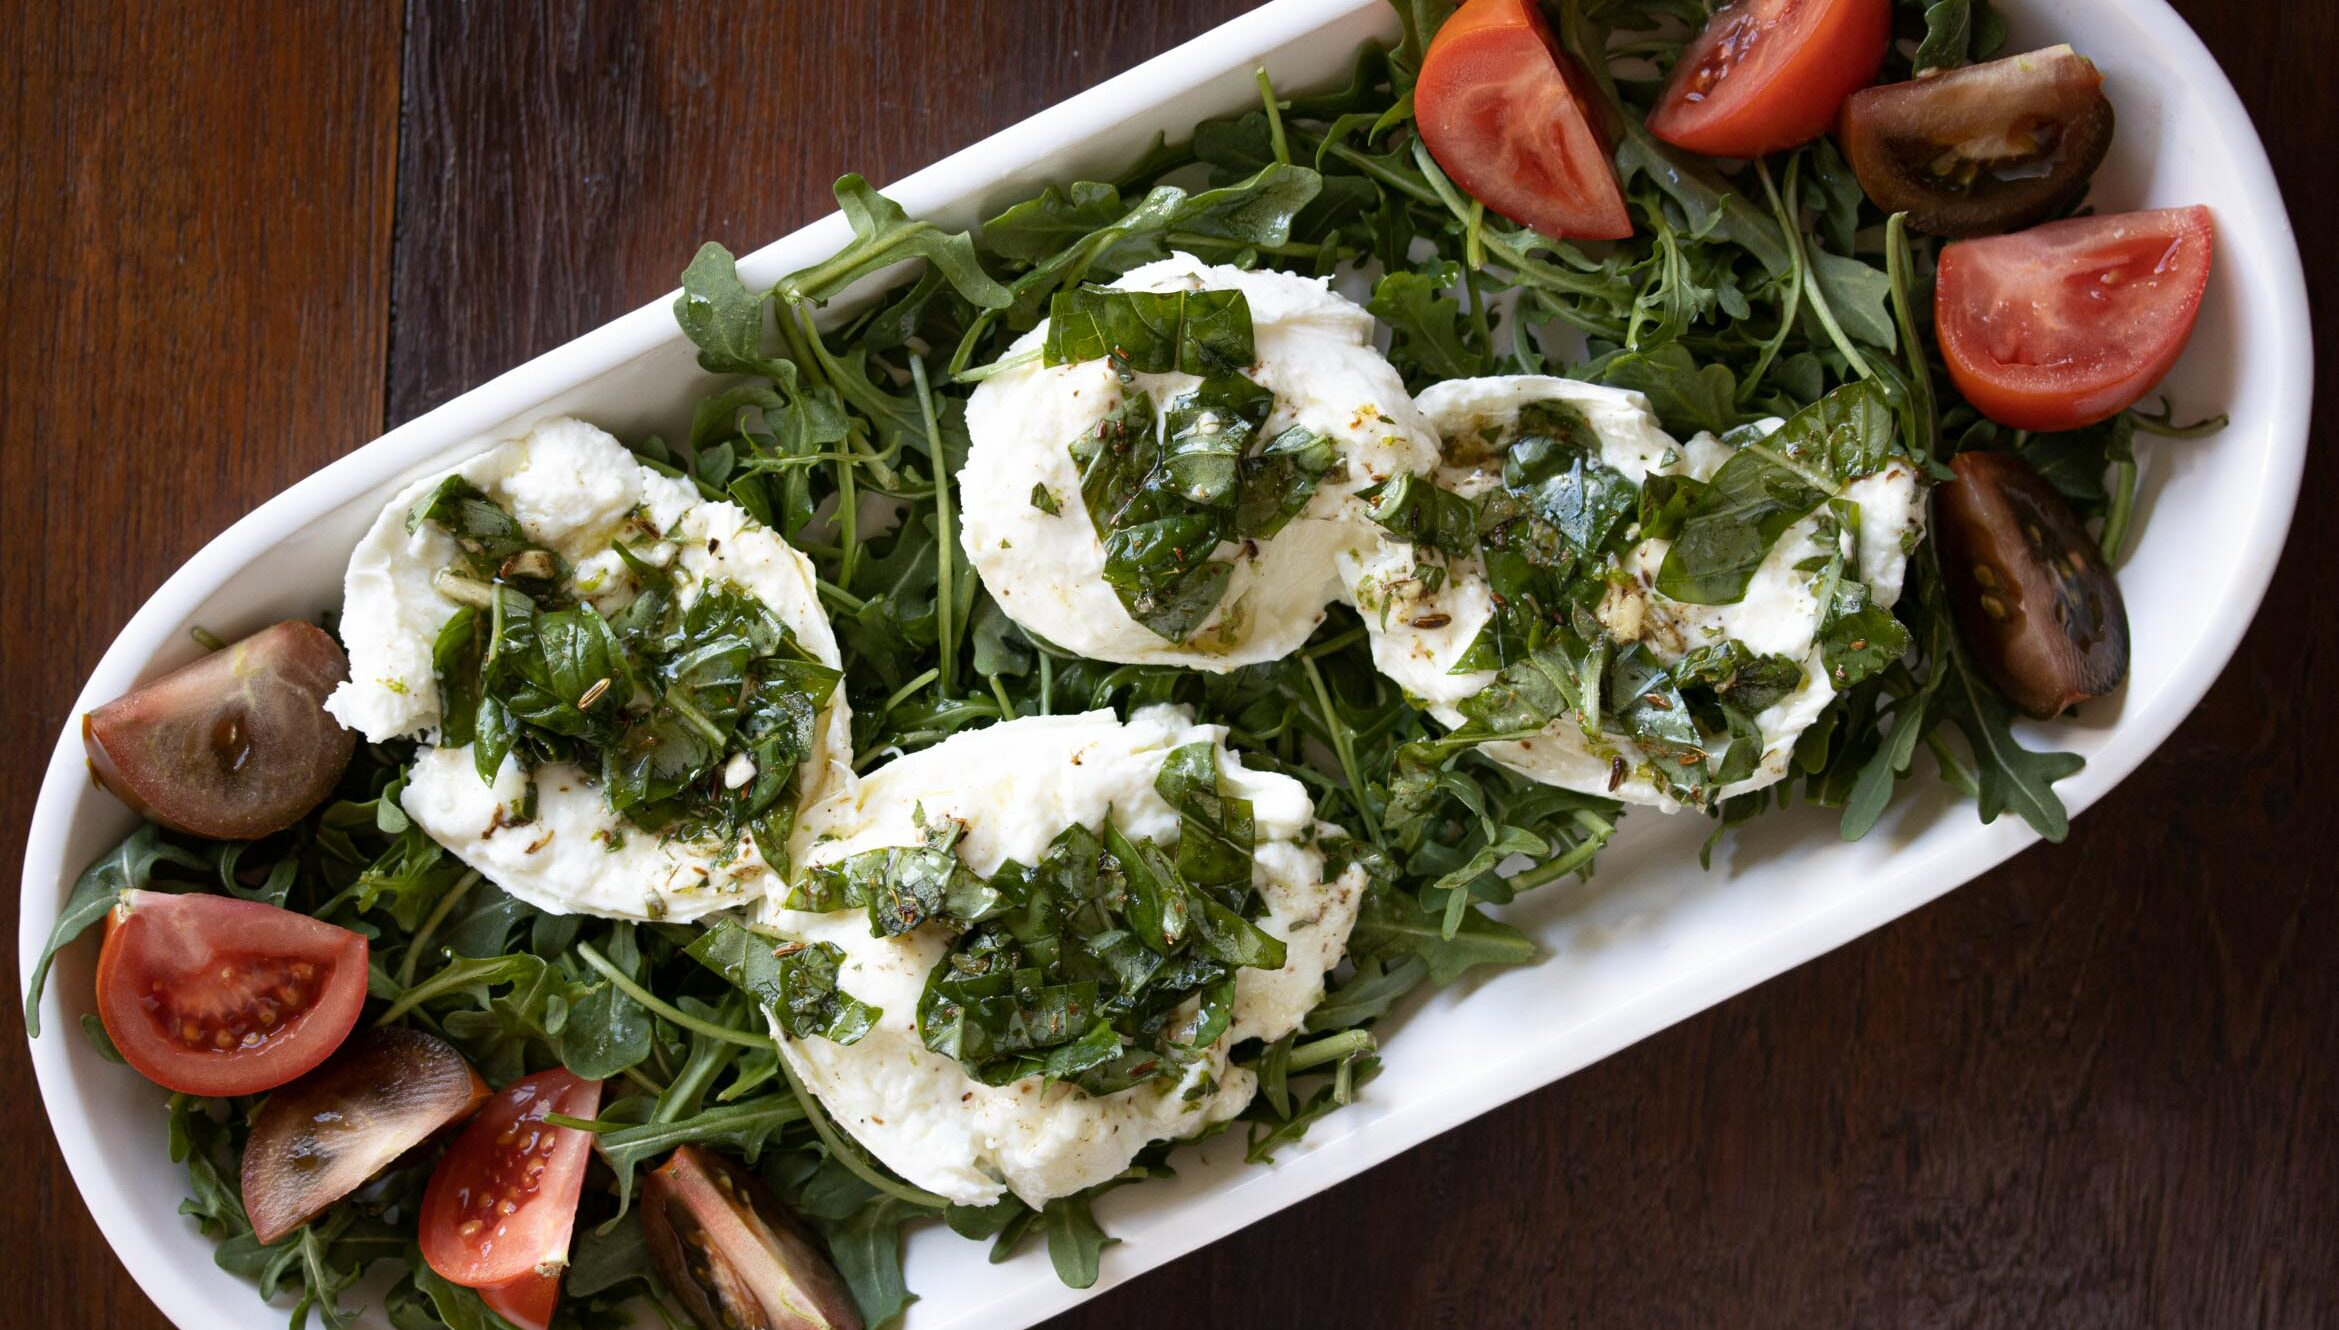 Buffalo mozzarella marinated, with tomatoes and arugula